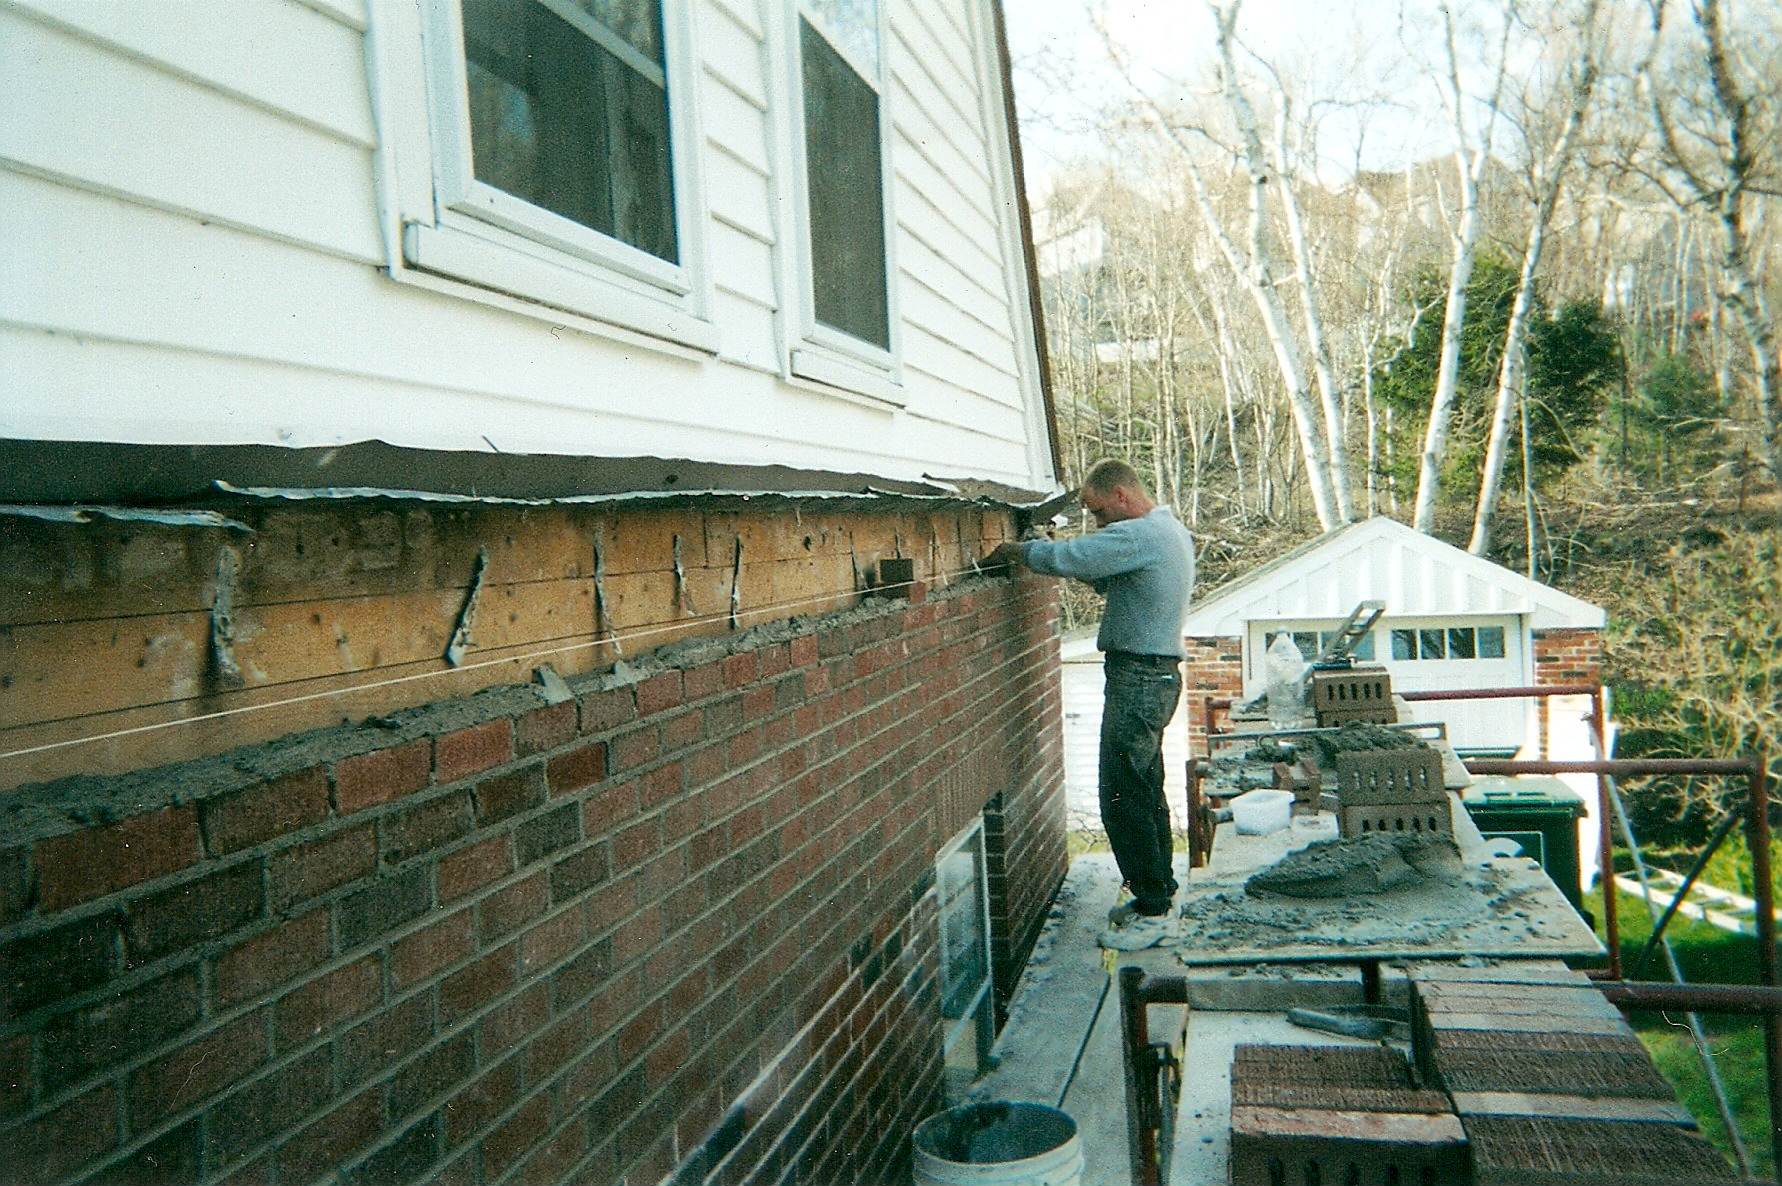 masonry repair services completed in Halifax, NS by Pro Chimney Services based in Halifax-Dartmouth Regional Municipality, NS is providing masonry repair services to all of the Halifax-Dartmouth Regional Municipality, Bedford, Sackville, Mount Uniacke, Hantsport, Windsor, Wolfville, Kentville, Chester Basin, Mahone Bay, Lunenburg, Bridgewater, Liverpool, Fall River, Wellington, Enfield, Elmsdale, Brookfield, Truro, Musquodoboit Harbour & surrounding areas.